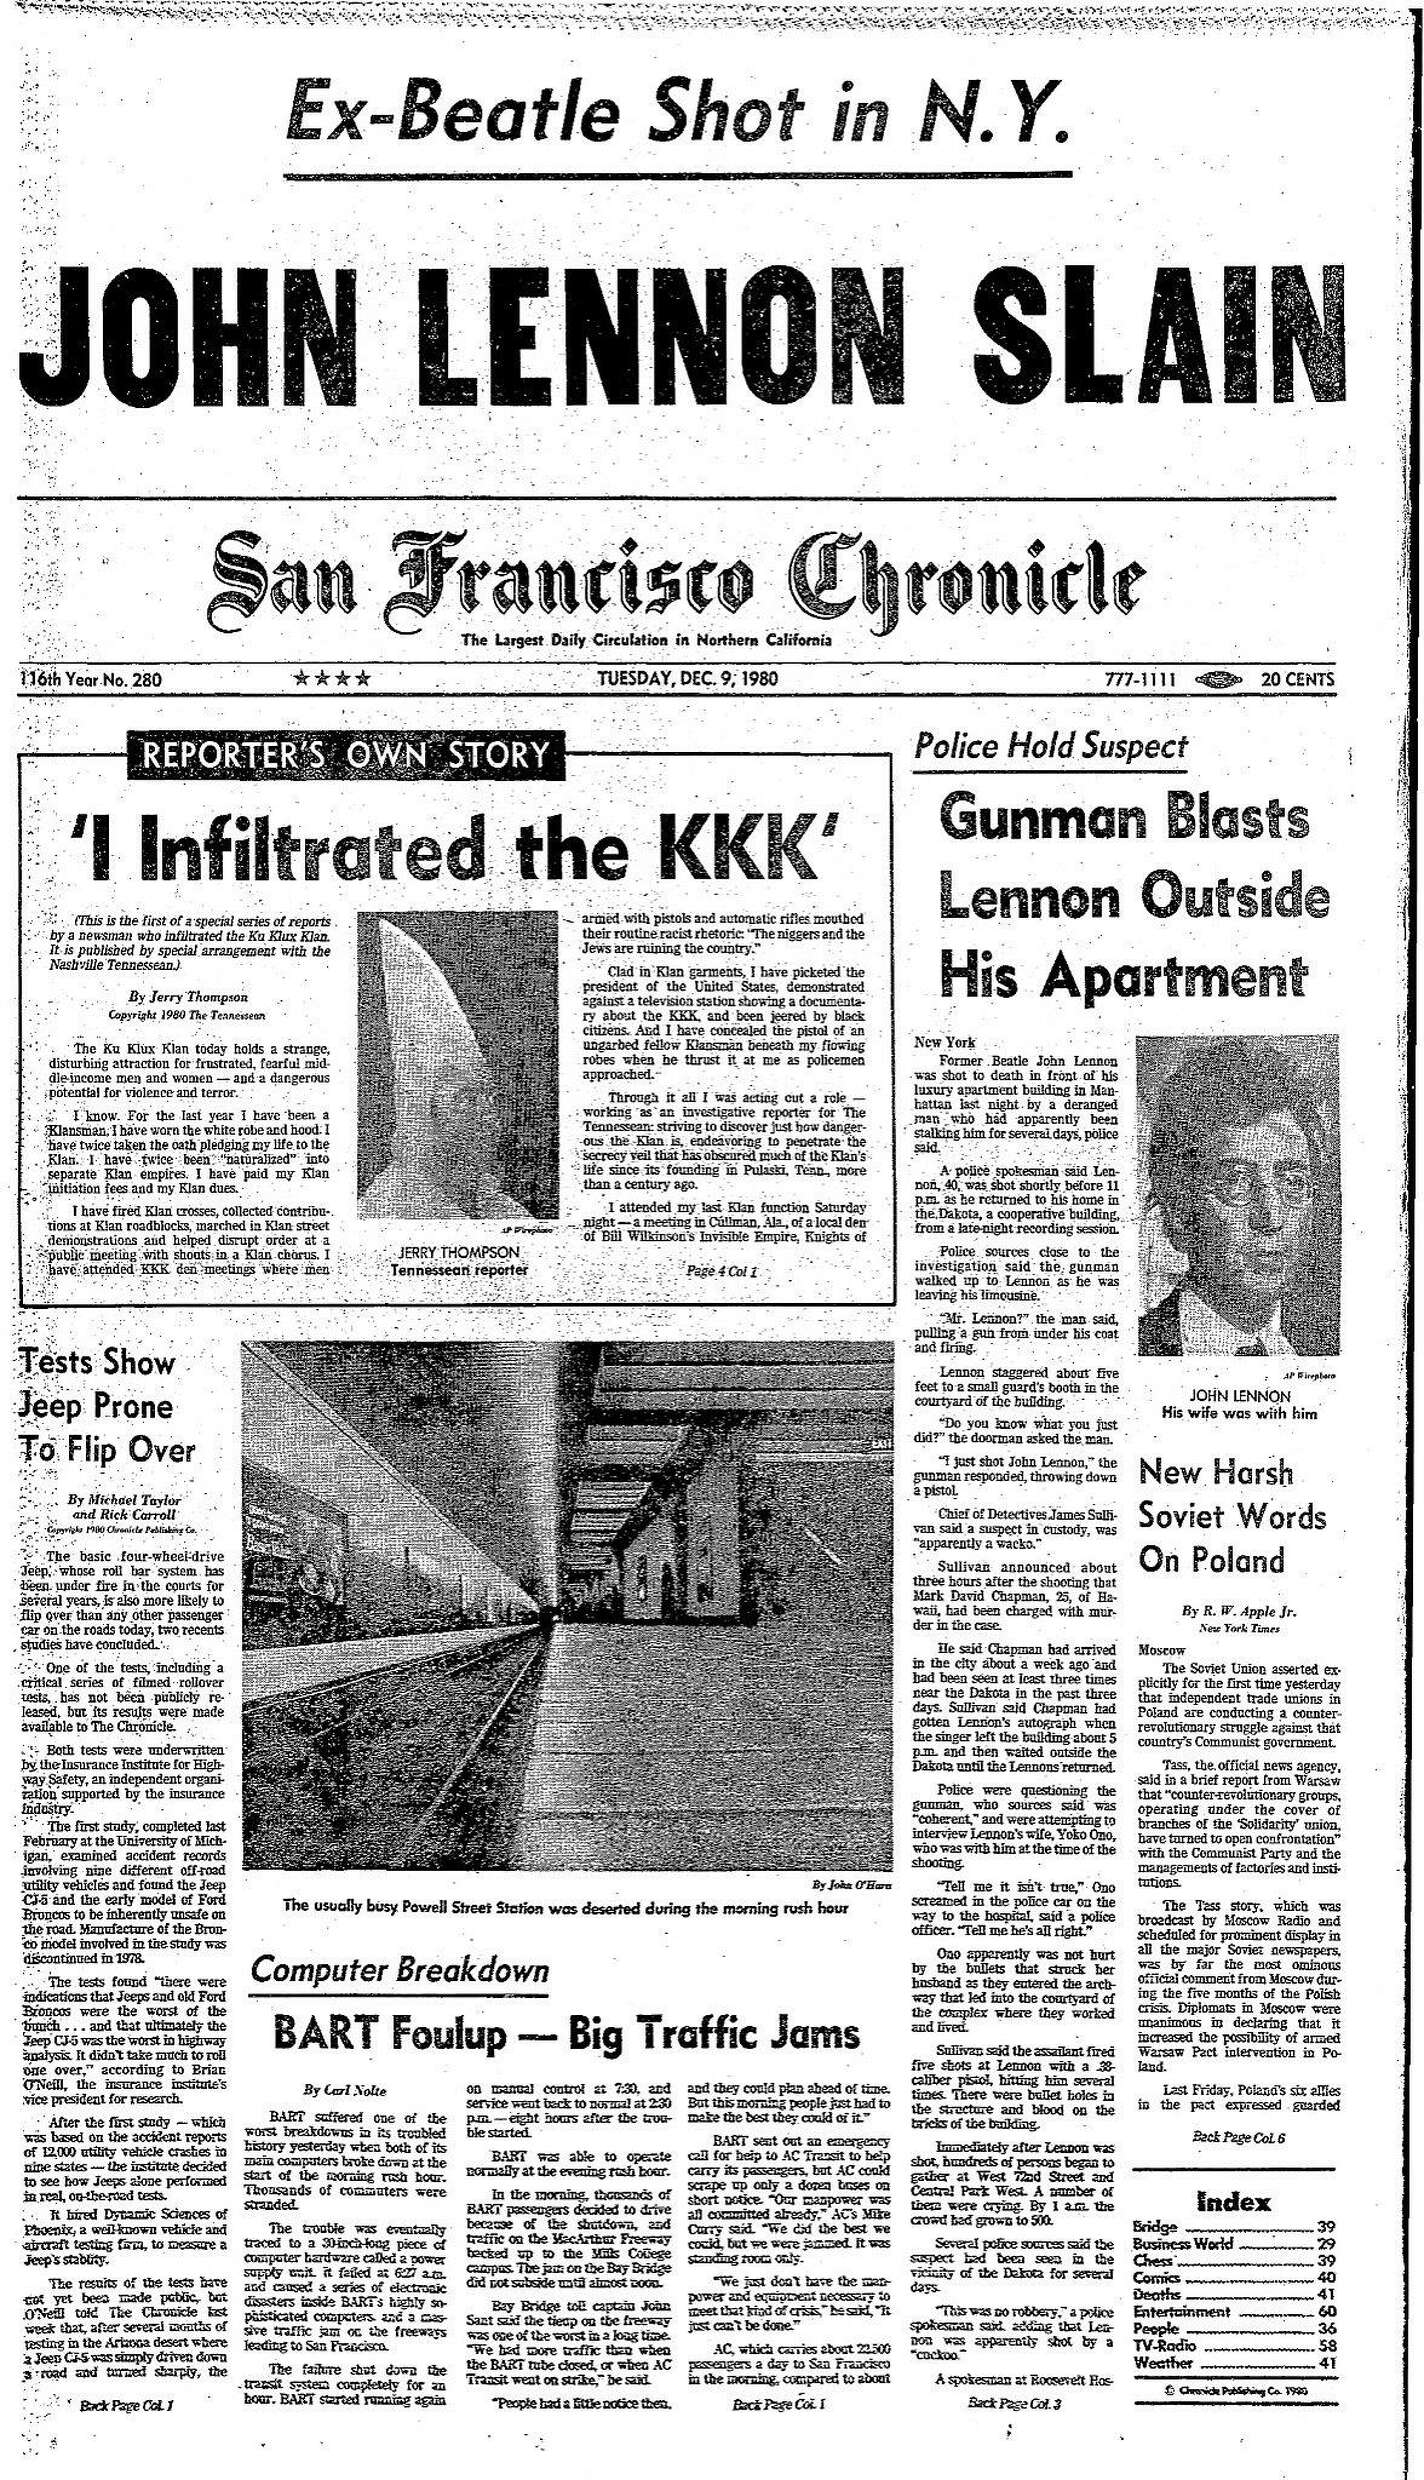 Chronicle Covers John Lennon S Violent Death And His Lasting Impact Sfchronicle Com